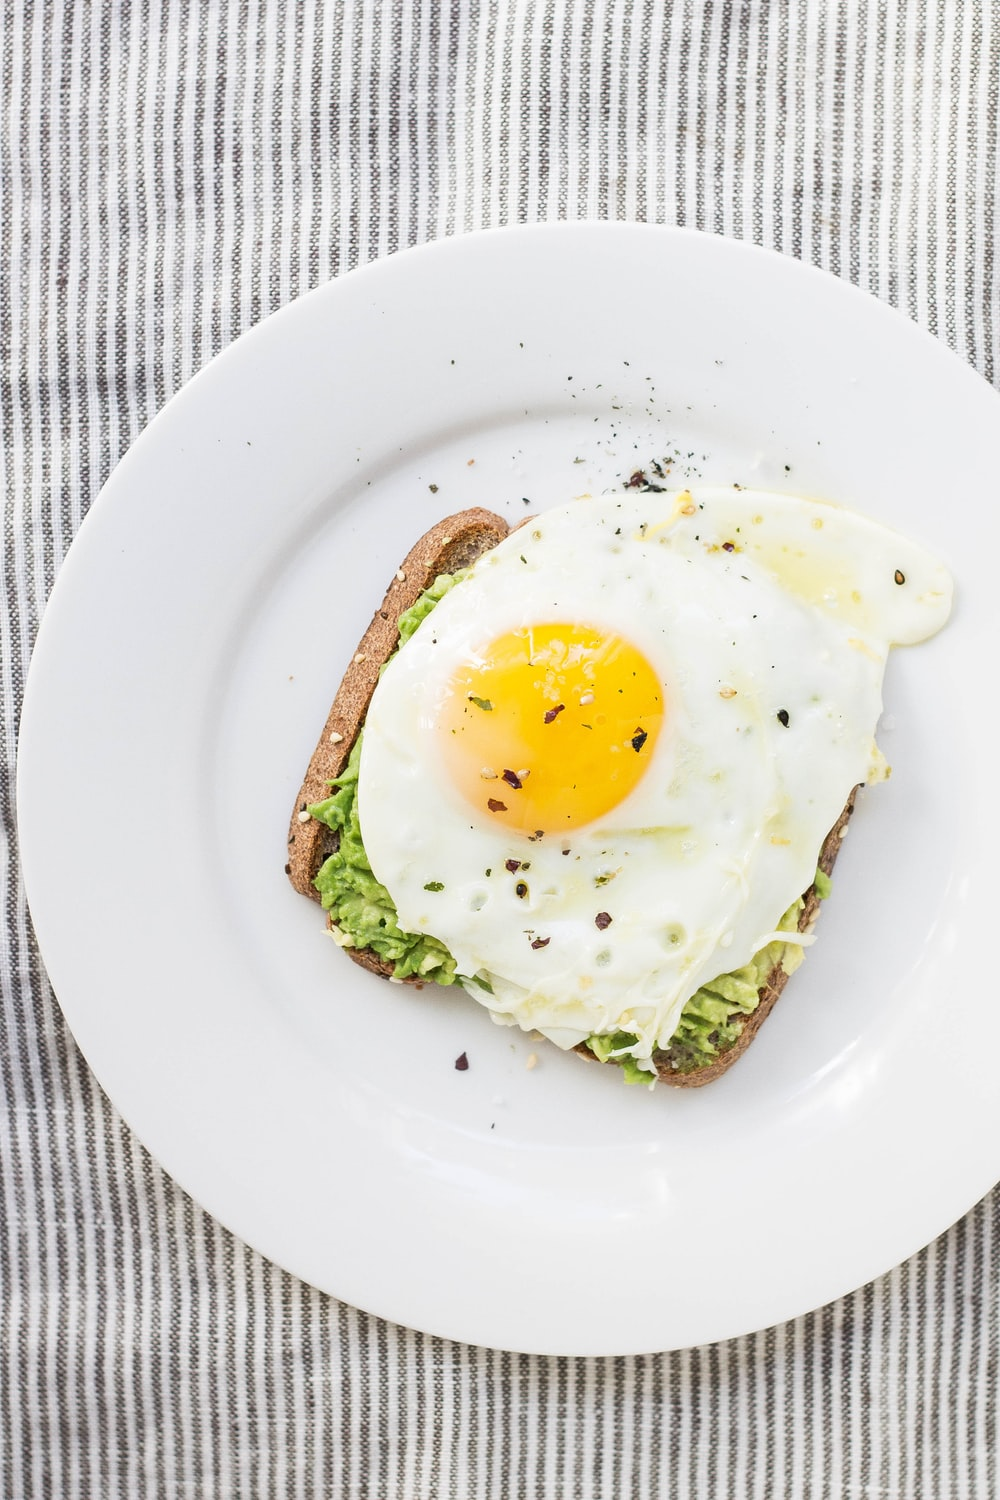 sunny side up egg, lettuce, bread on white ceramic plate, ways to eat an avocado